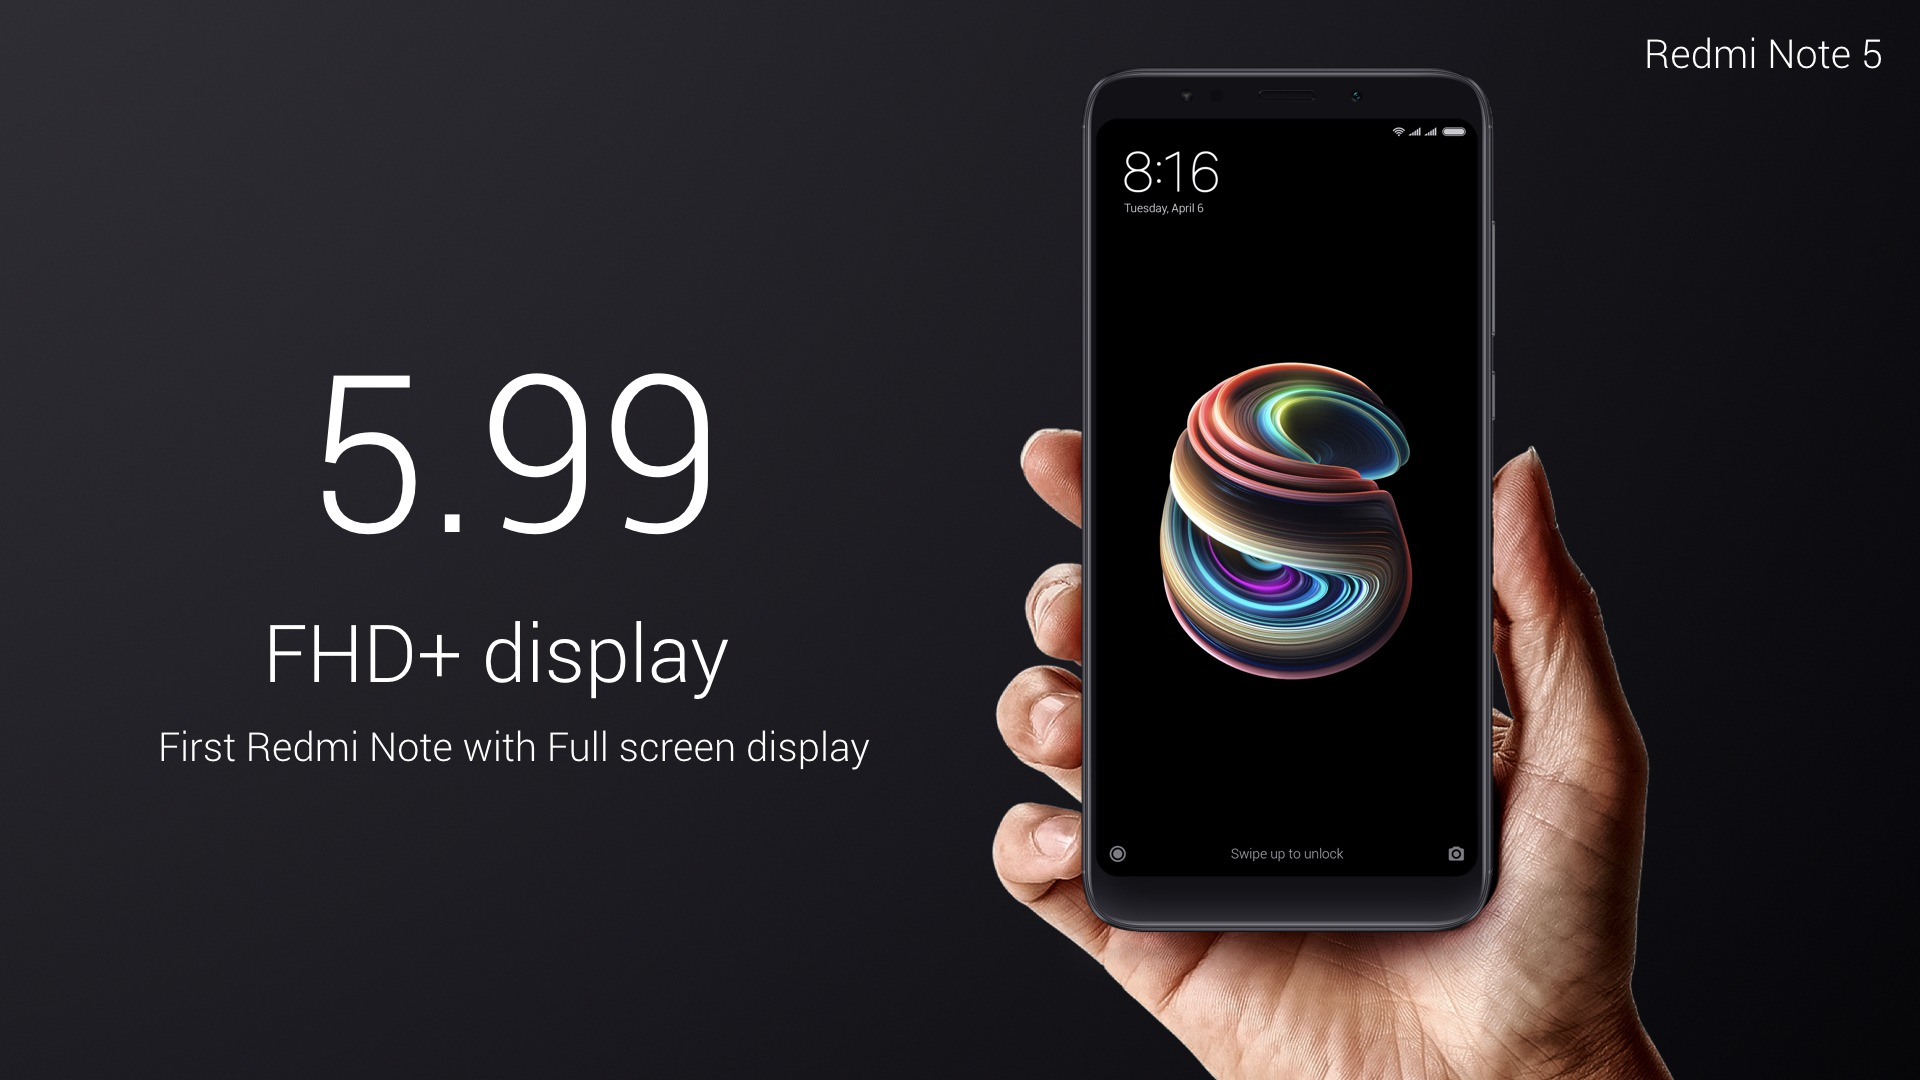 Xiaomi Redmi Note 5 officially launched - Here's all you need to know 5